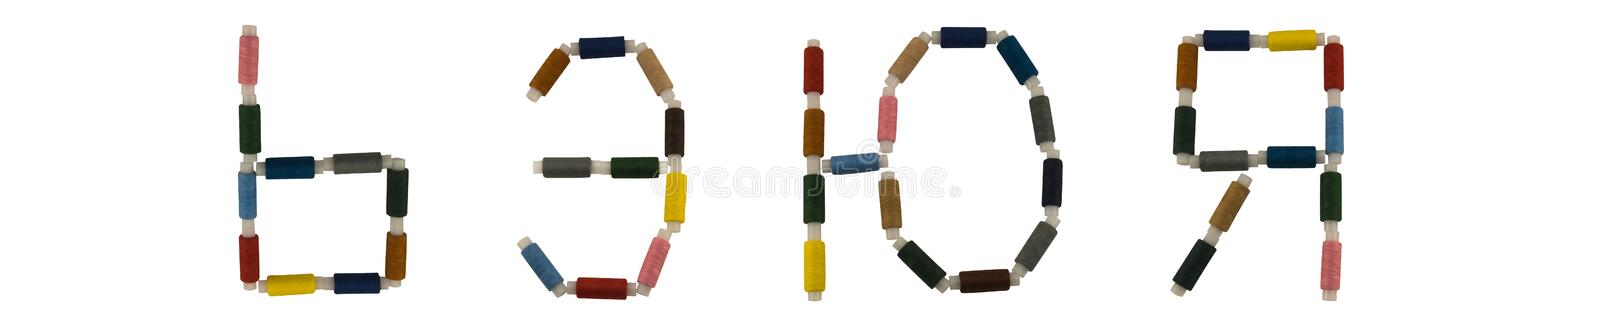 Isolated Font Russian alphabet made of colorful spools of thread for sewing. On white background stock image